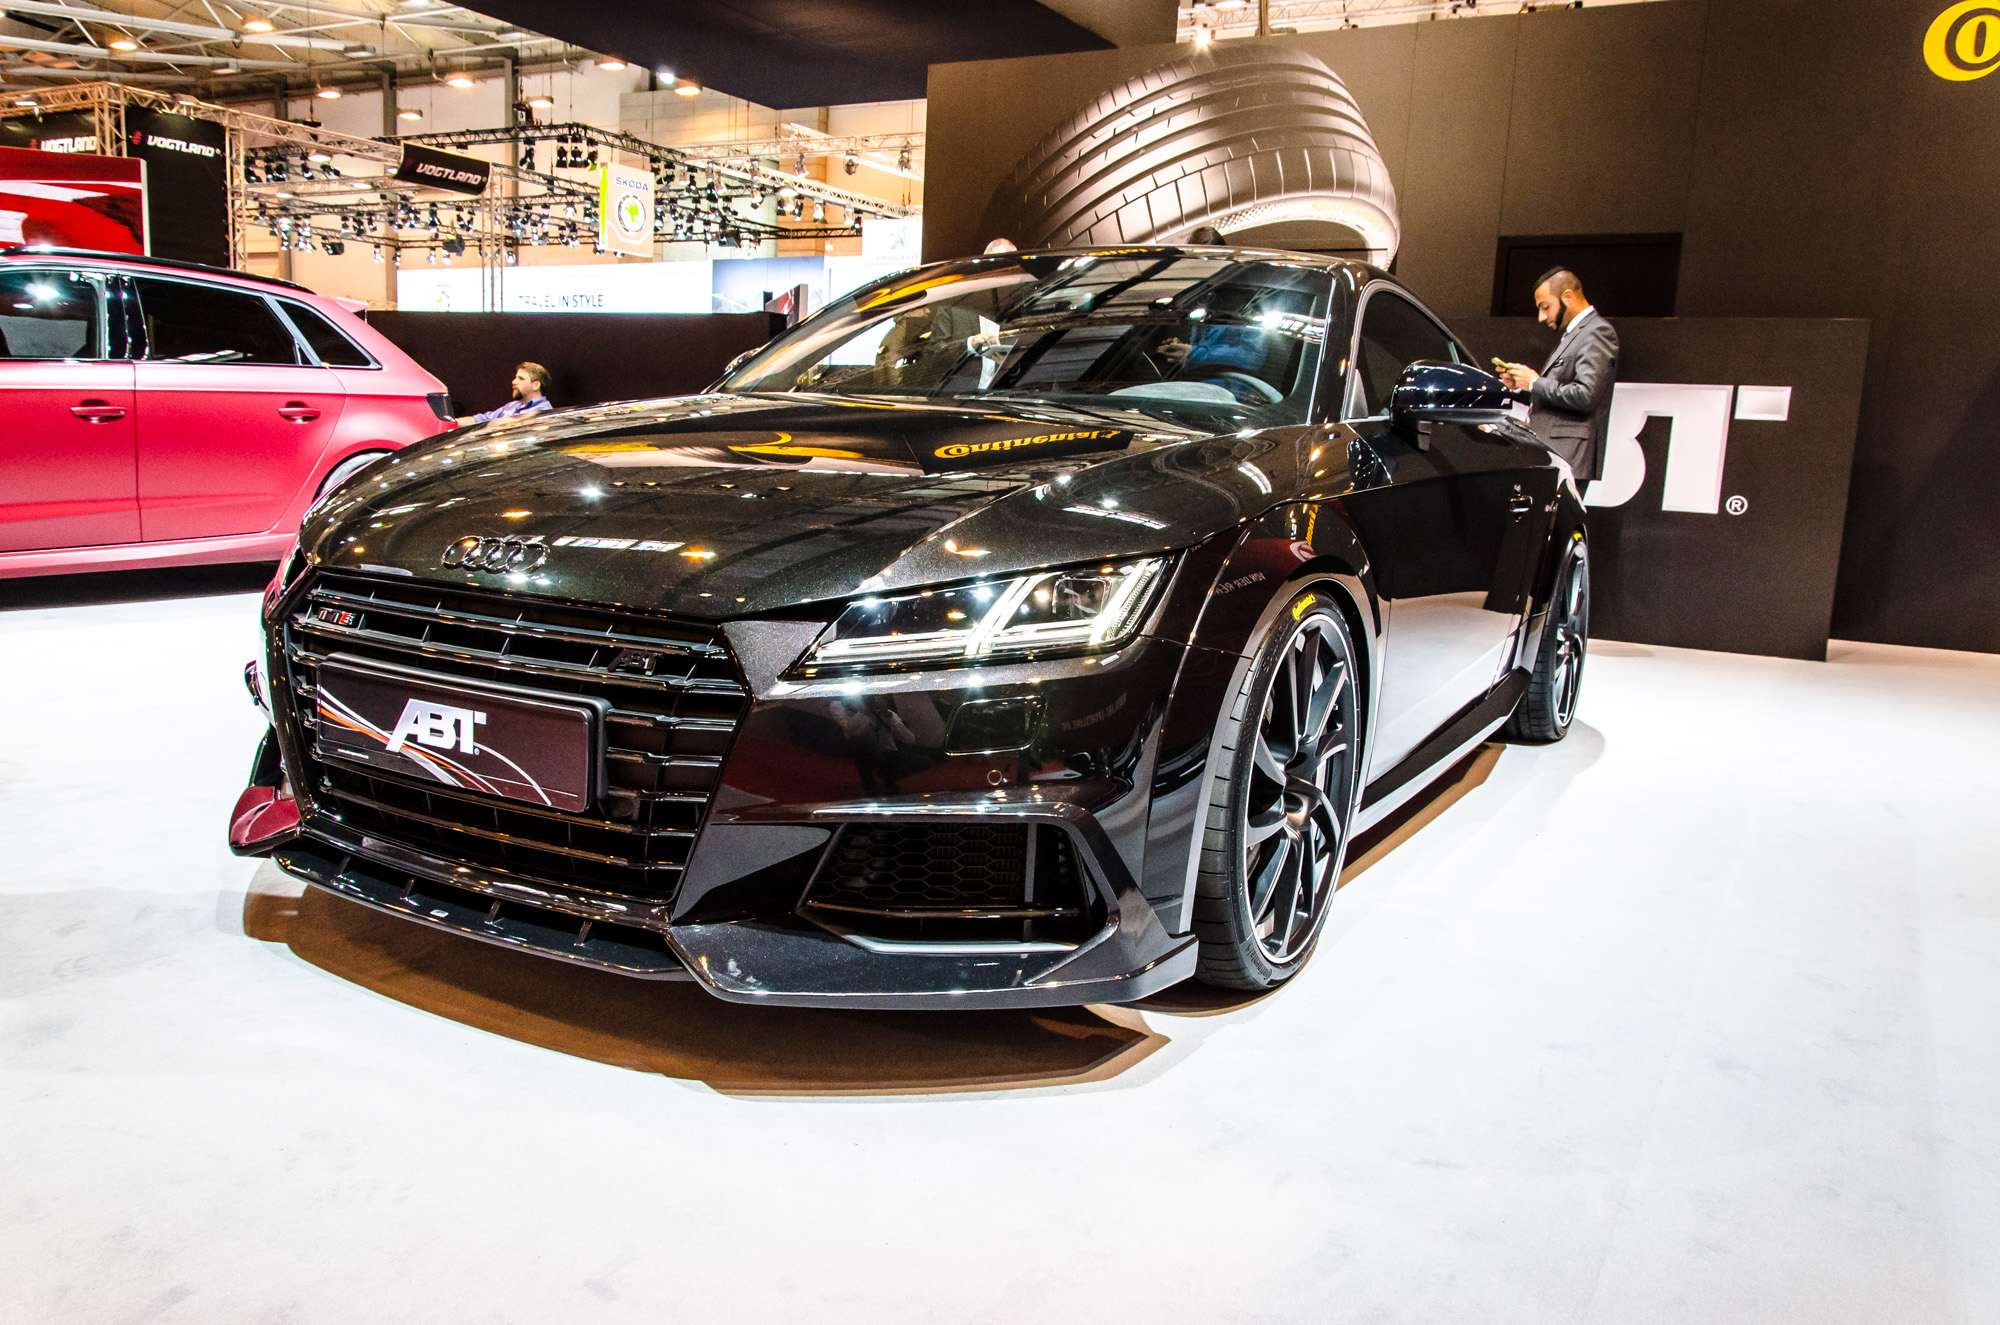 essen-motor-show-2015-preview-day-56